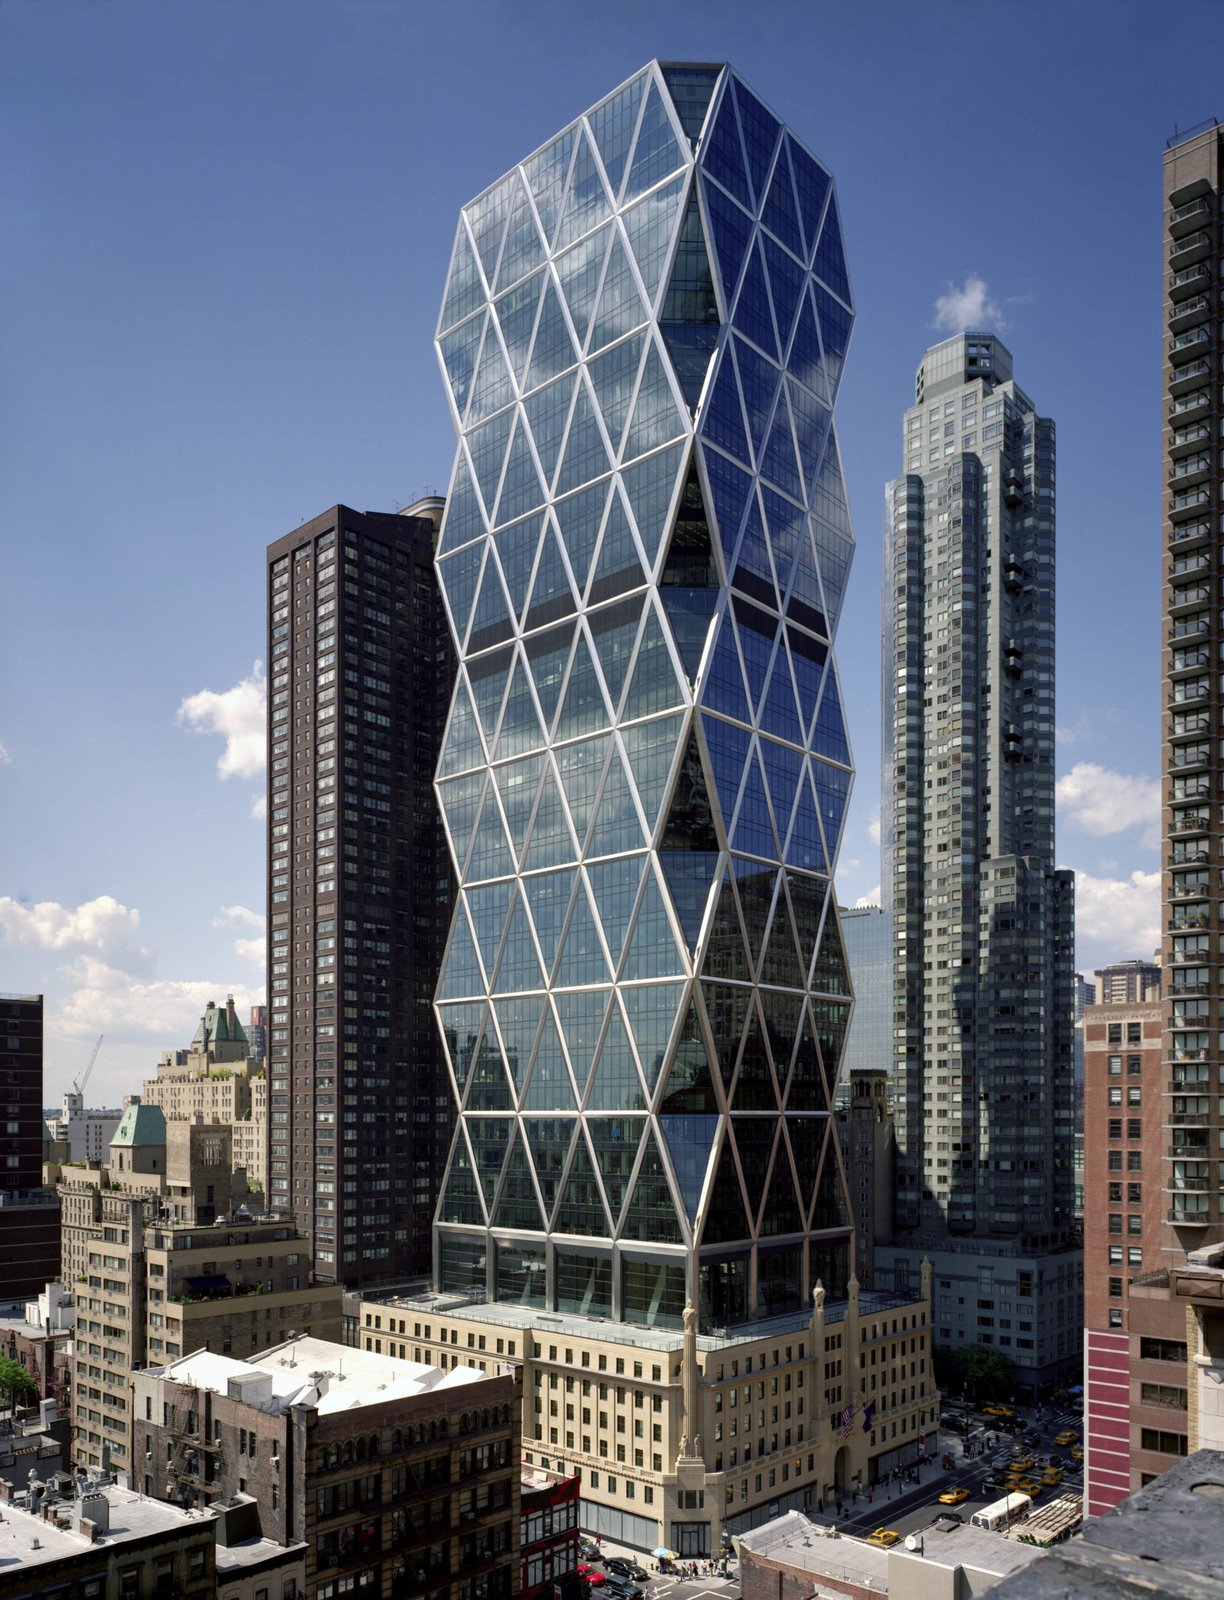 The Hearst Tower in Manhattan, designed by Foster + Partners.   Photo 2 of 6 in Can Empty Offices and Hotels Help Alleviate the Housing Crisis? from New Exhibition: The Brits Who Built the Modern World